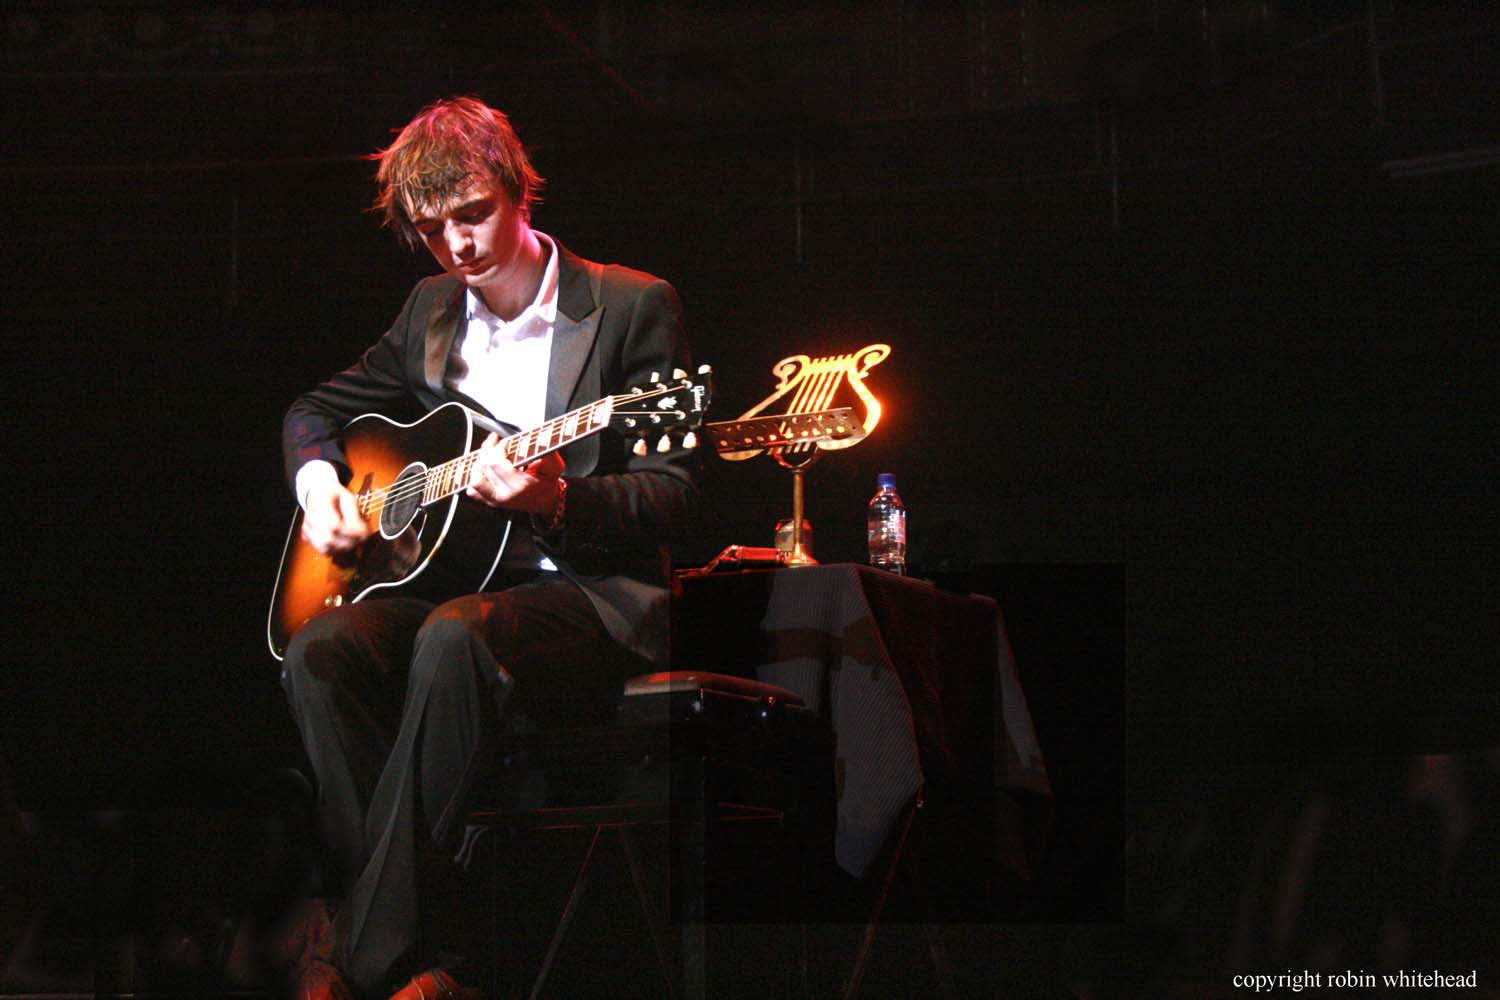 Pete Doherty Again, and Well Dressed